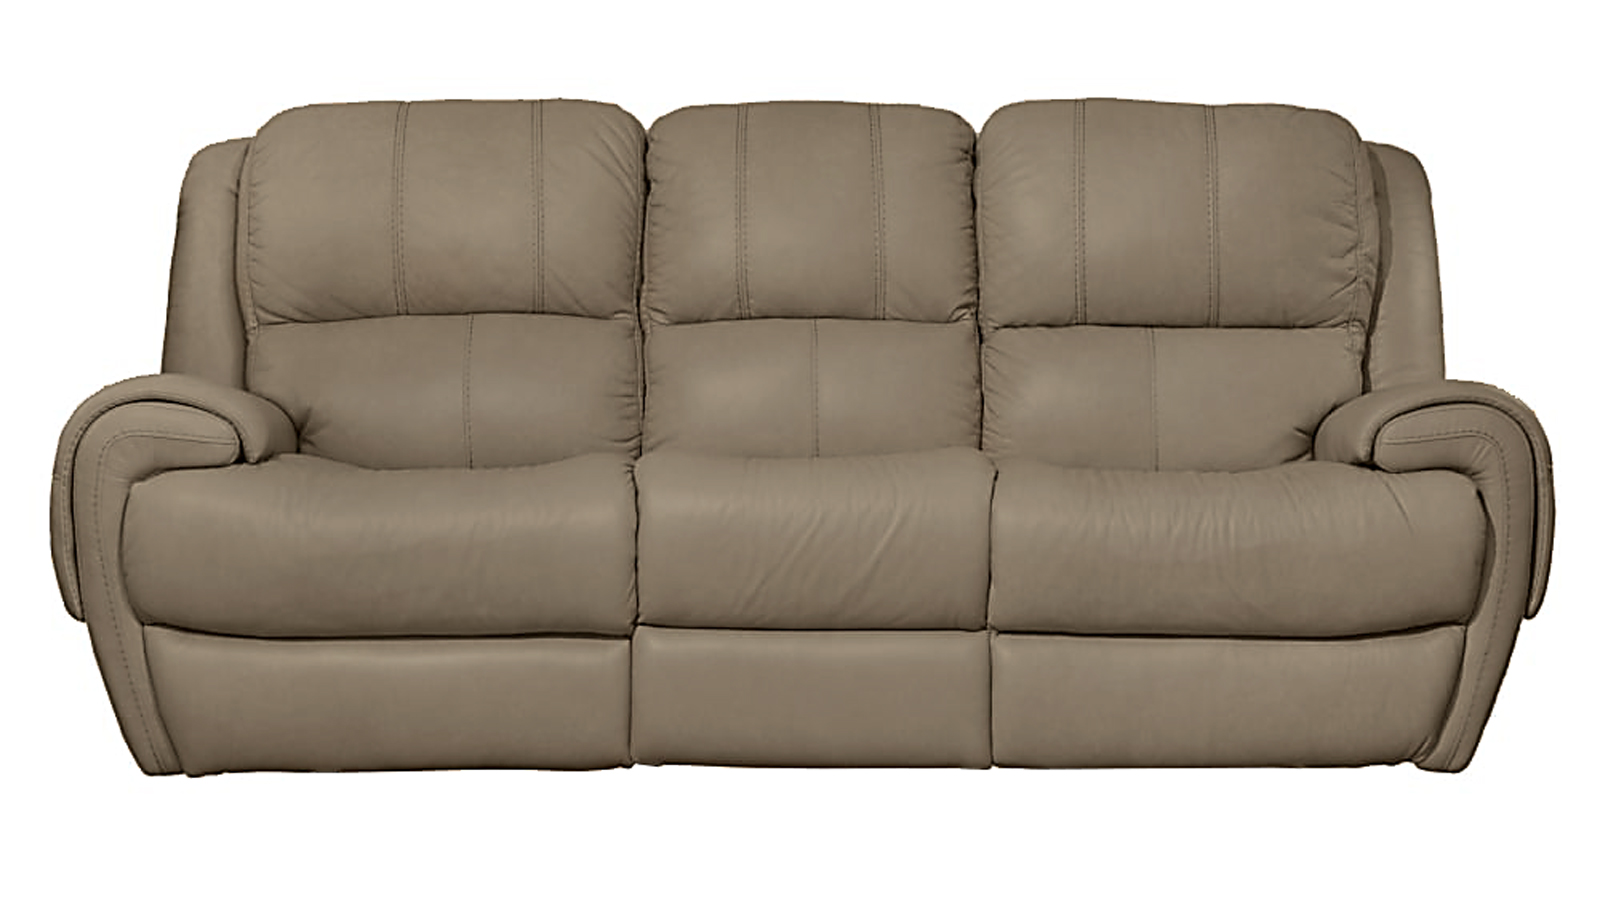 American Sofa Images American Power Reclining Sofa